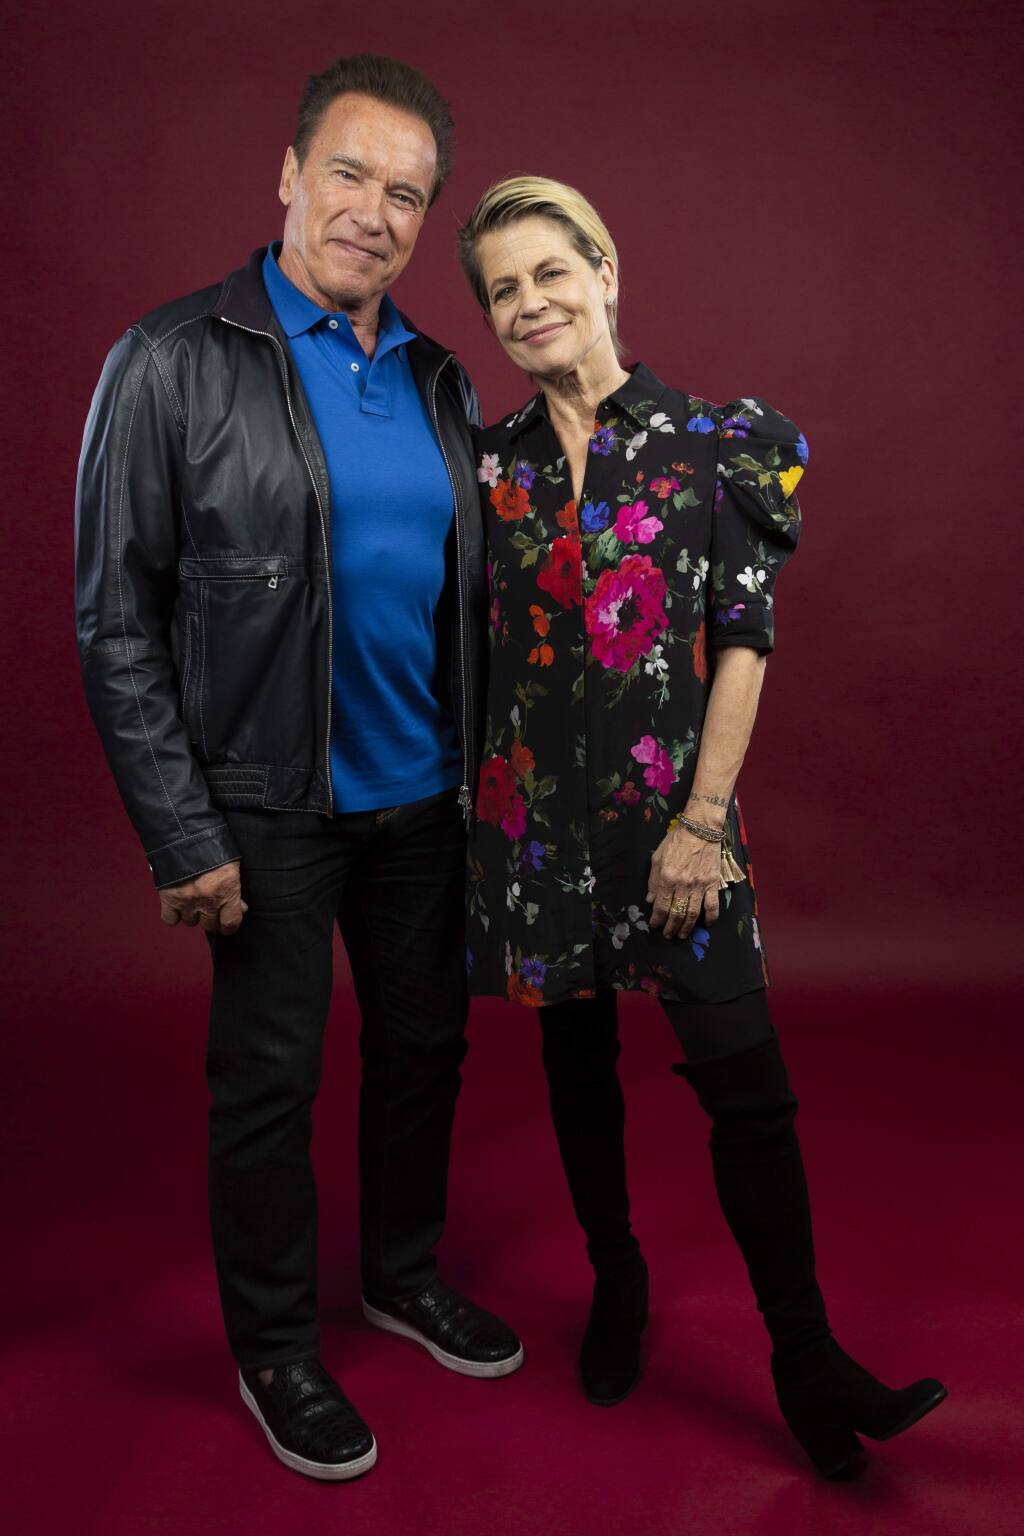 This Oct. 26, 2019 photo shows actor Arnold Schwarzenegger, left, and actress Linda Hamilton posing for a portrait to promote the film, 'Terminator: Dark Fate' at the Four Seasons Hotel Los Angeles at Beverly Hills in Los Angeles. (Photo by Willy Sanjuan/Invision/AP)